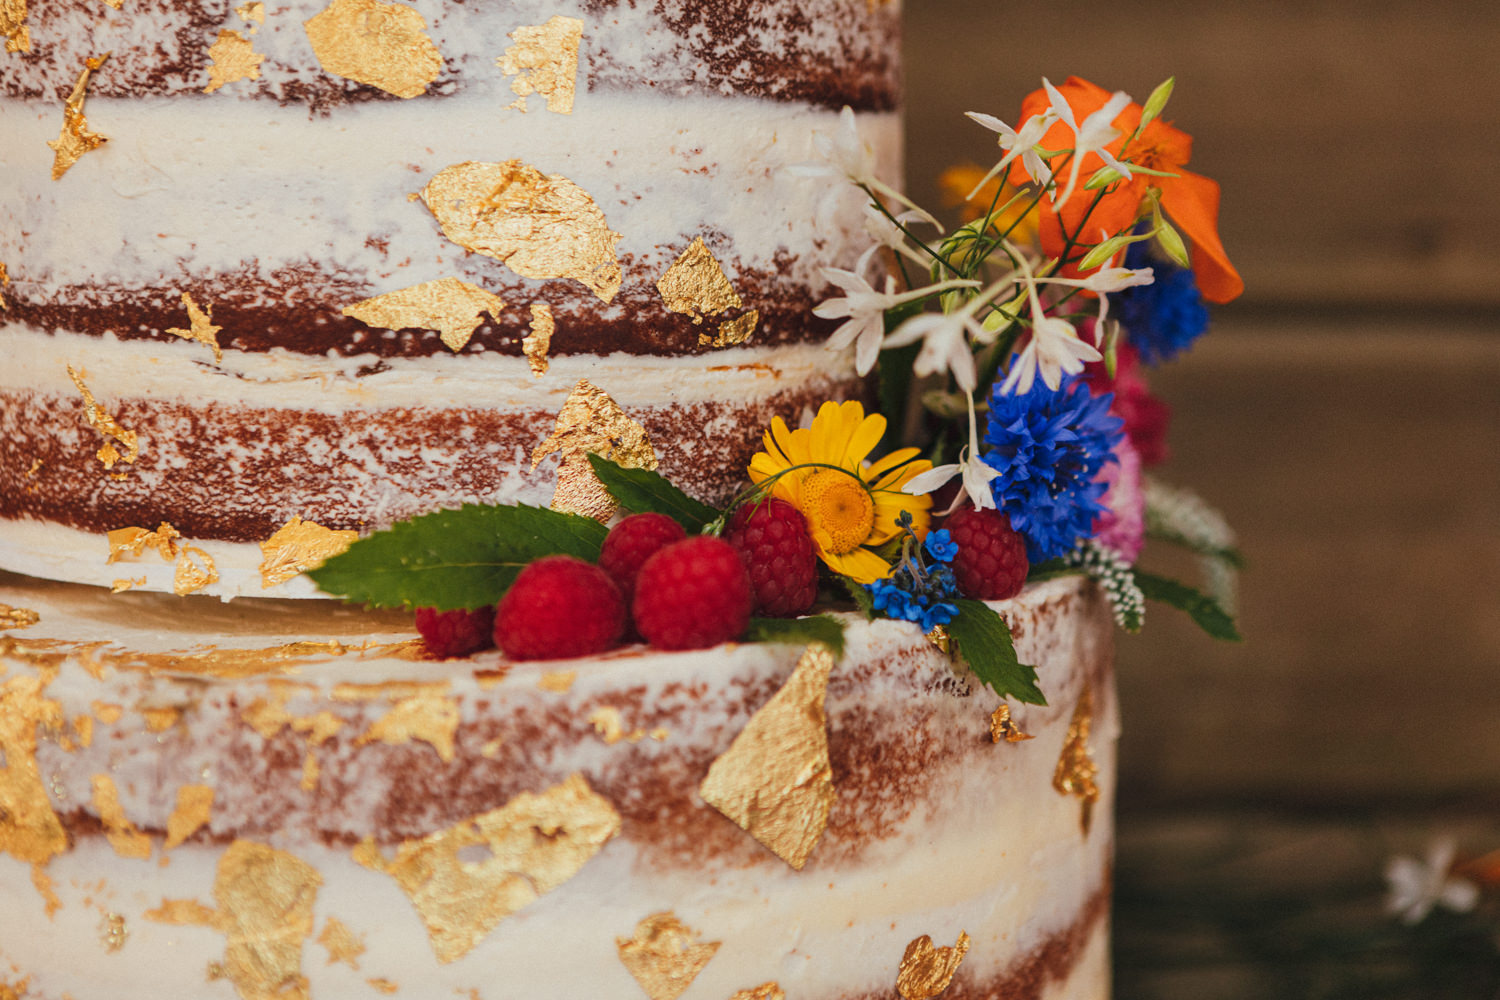 colourful wedding cake, boho wedding, boho bride, hippy wedding, farm wedding, flowers on cake, bright colours, Holsome Park Wedding Photography, totnes wedding, farm wedding, festival wedding